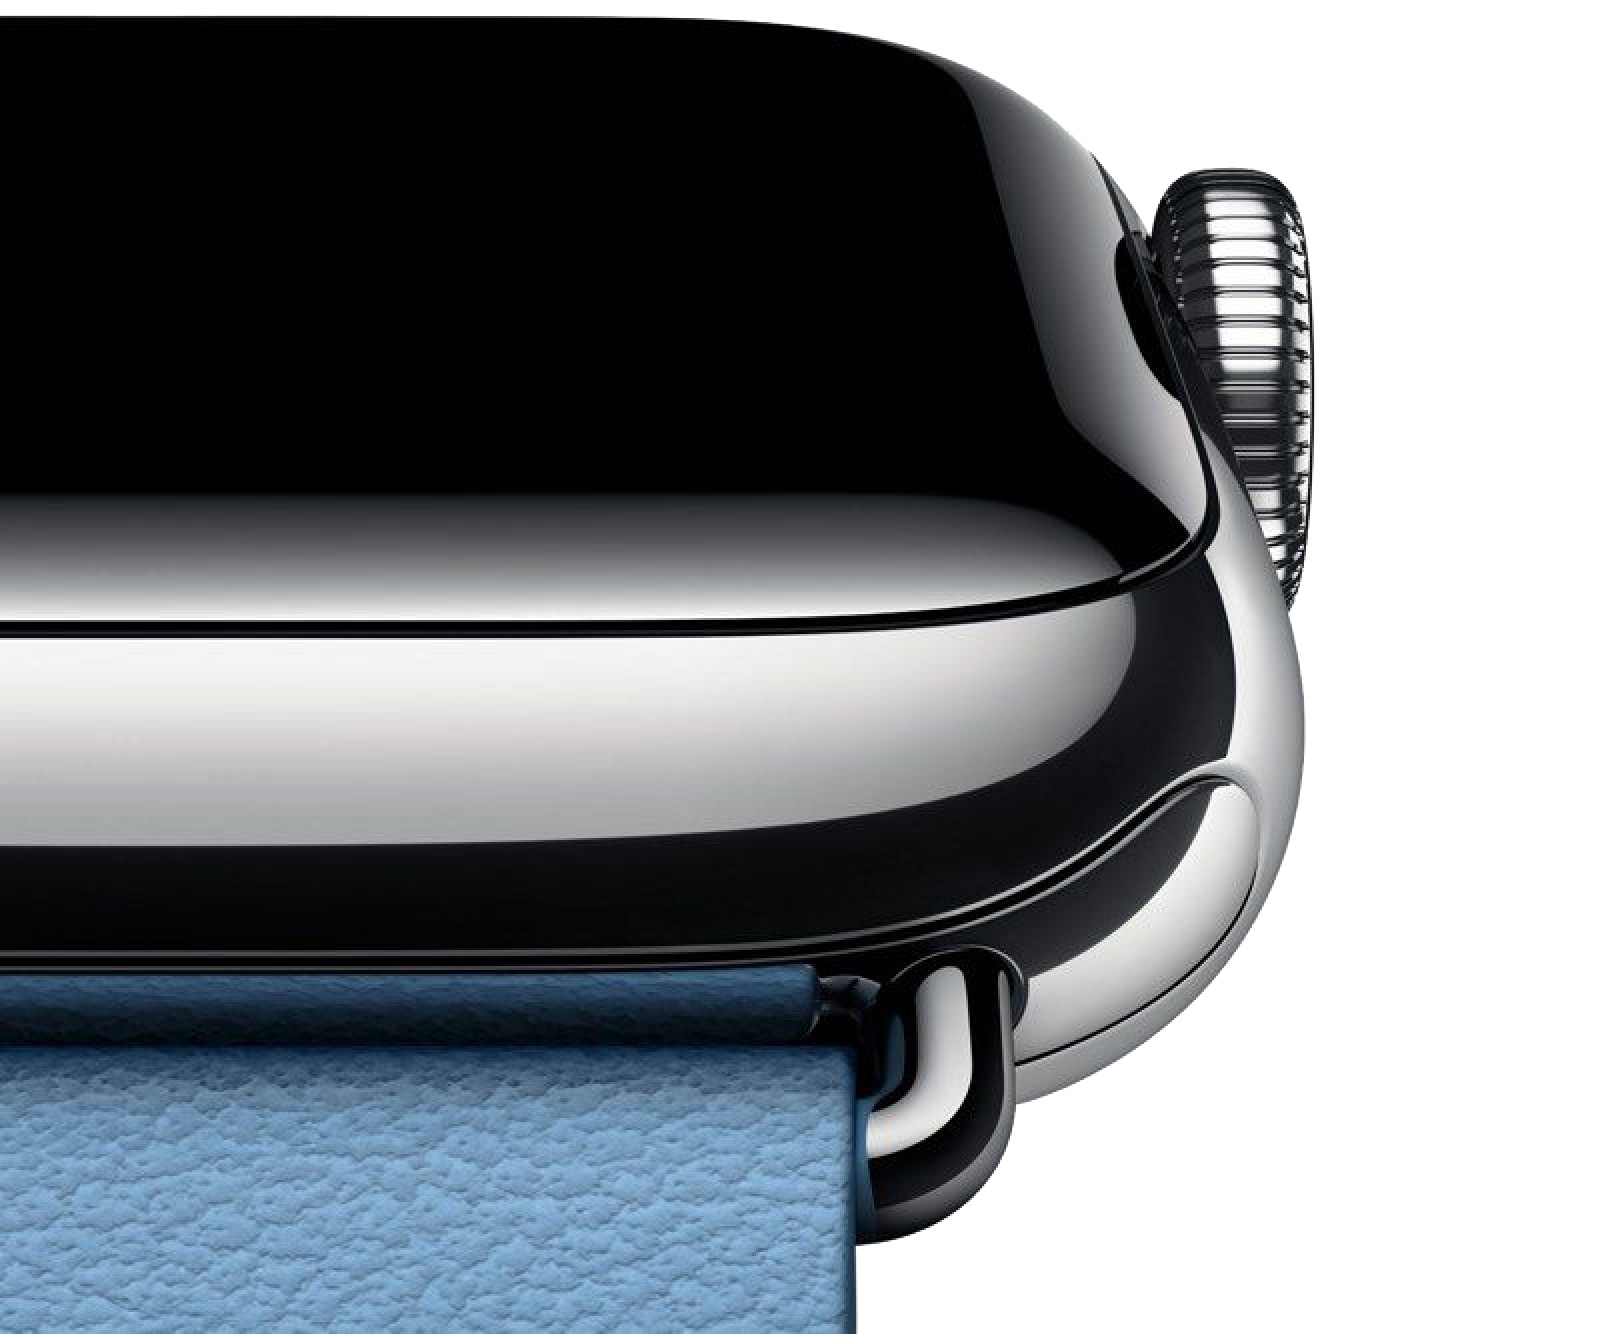 applewatchseries4displaycorners